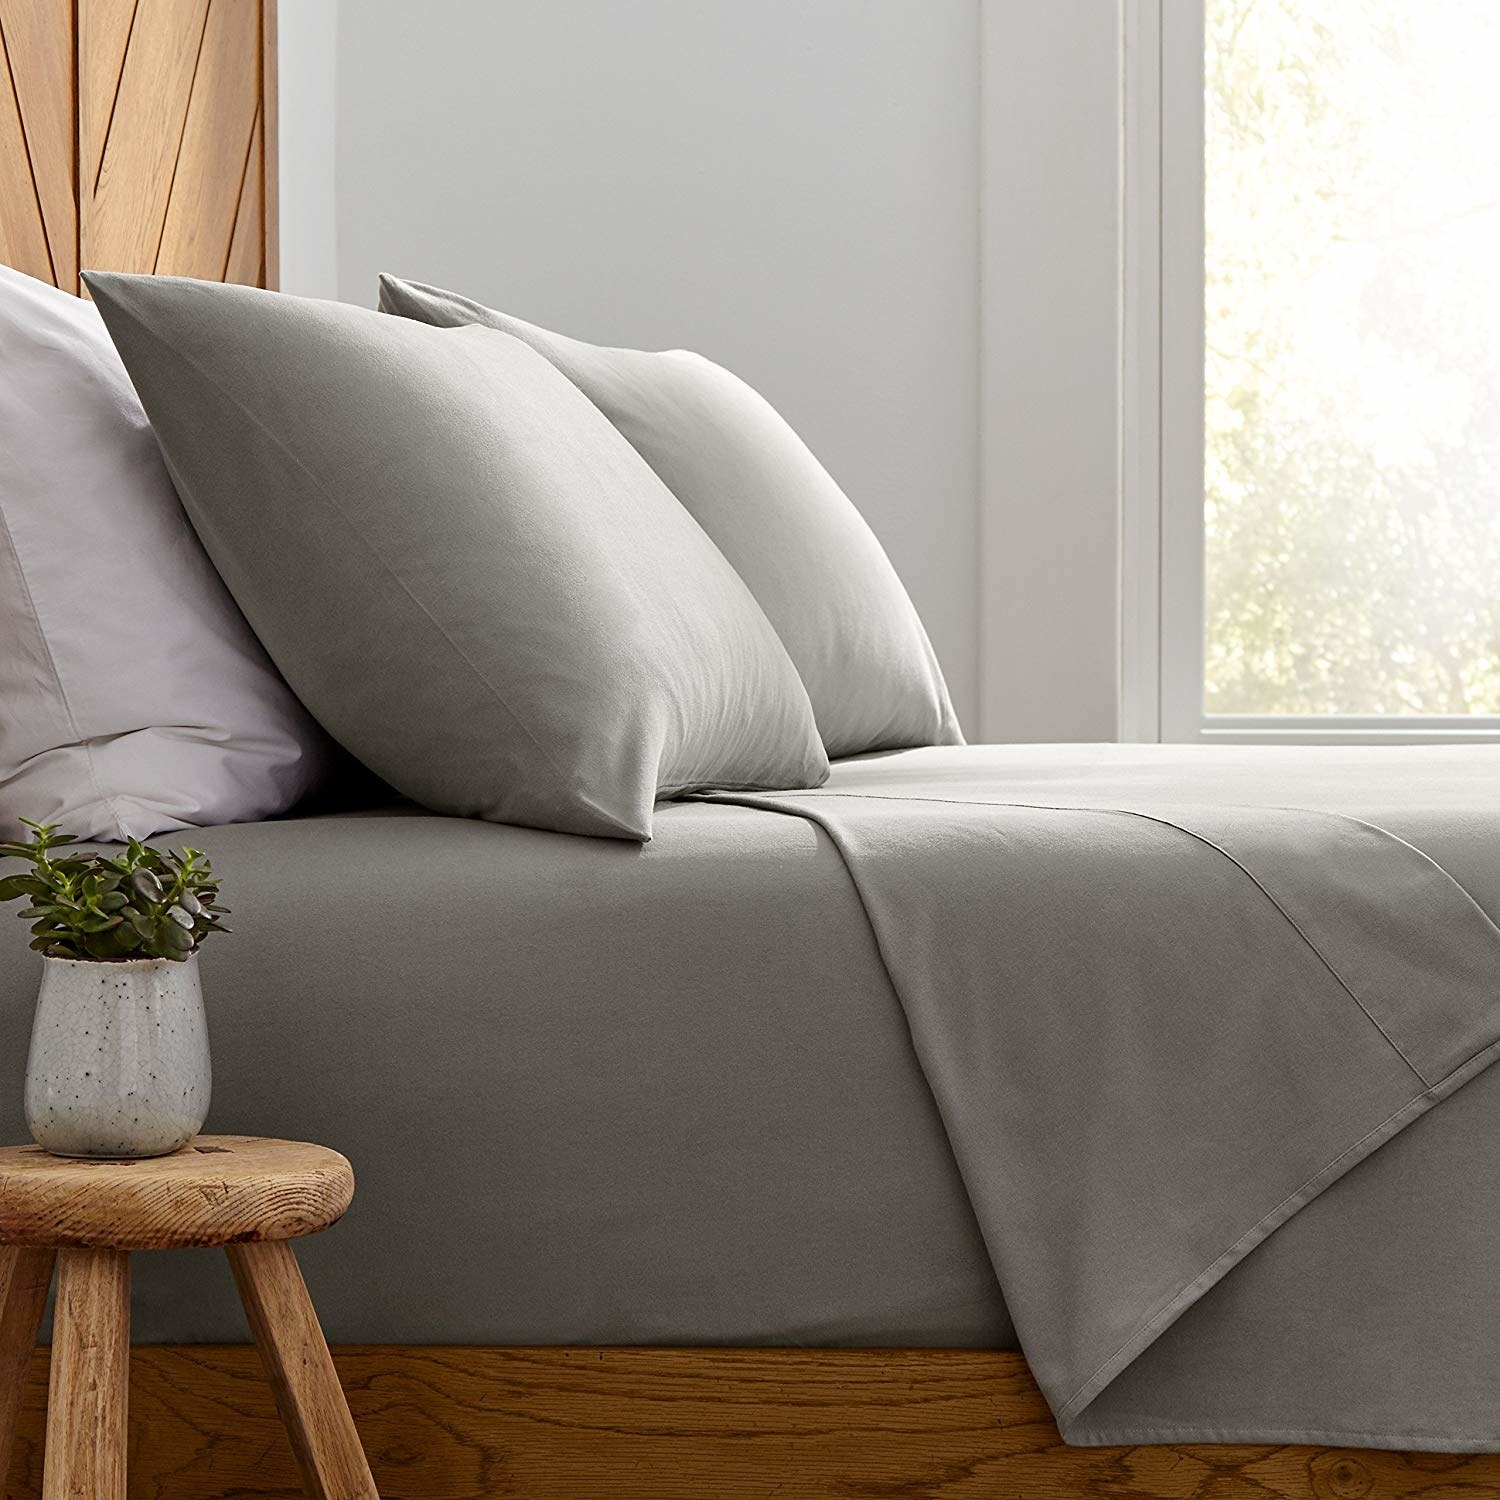 A set of flannel sheets on a neatly made bed